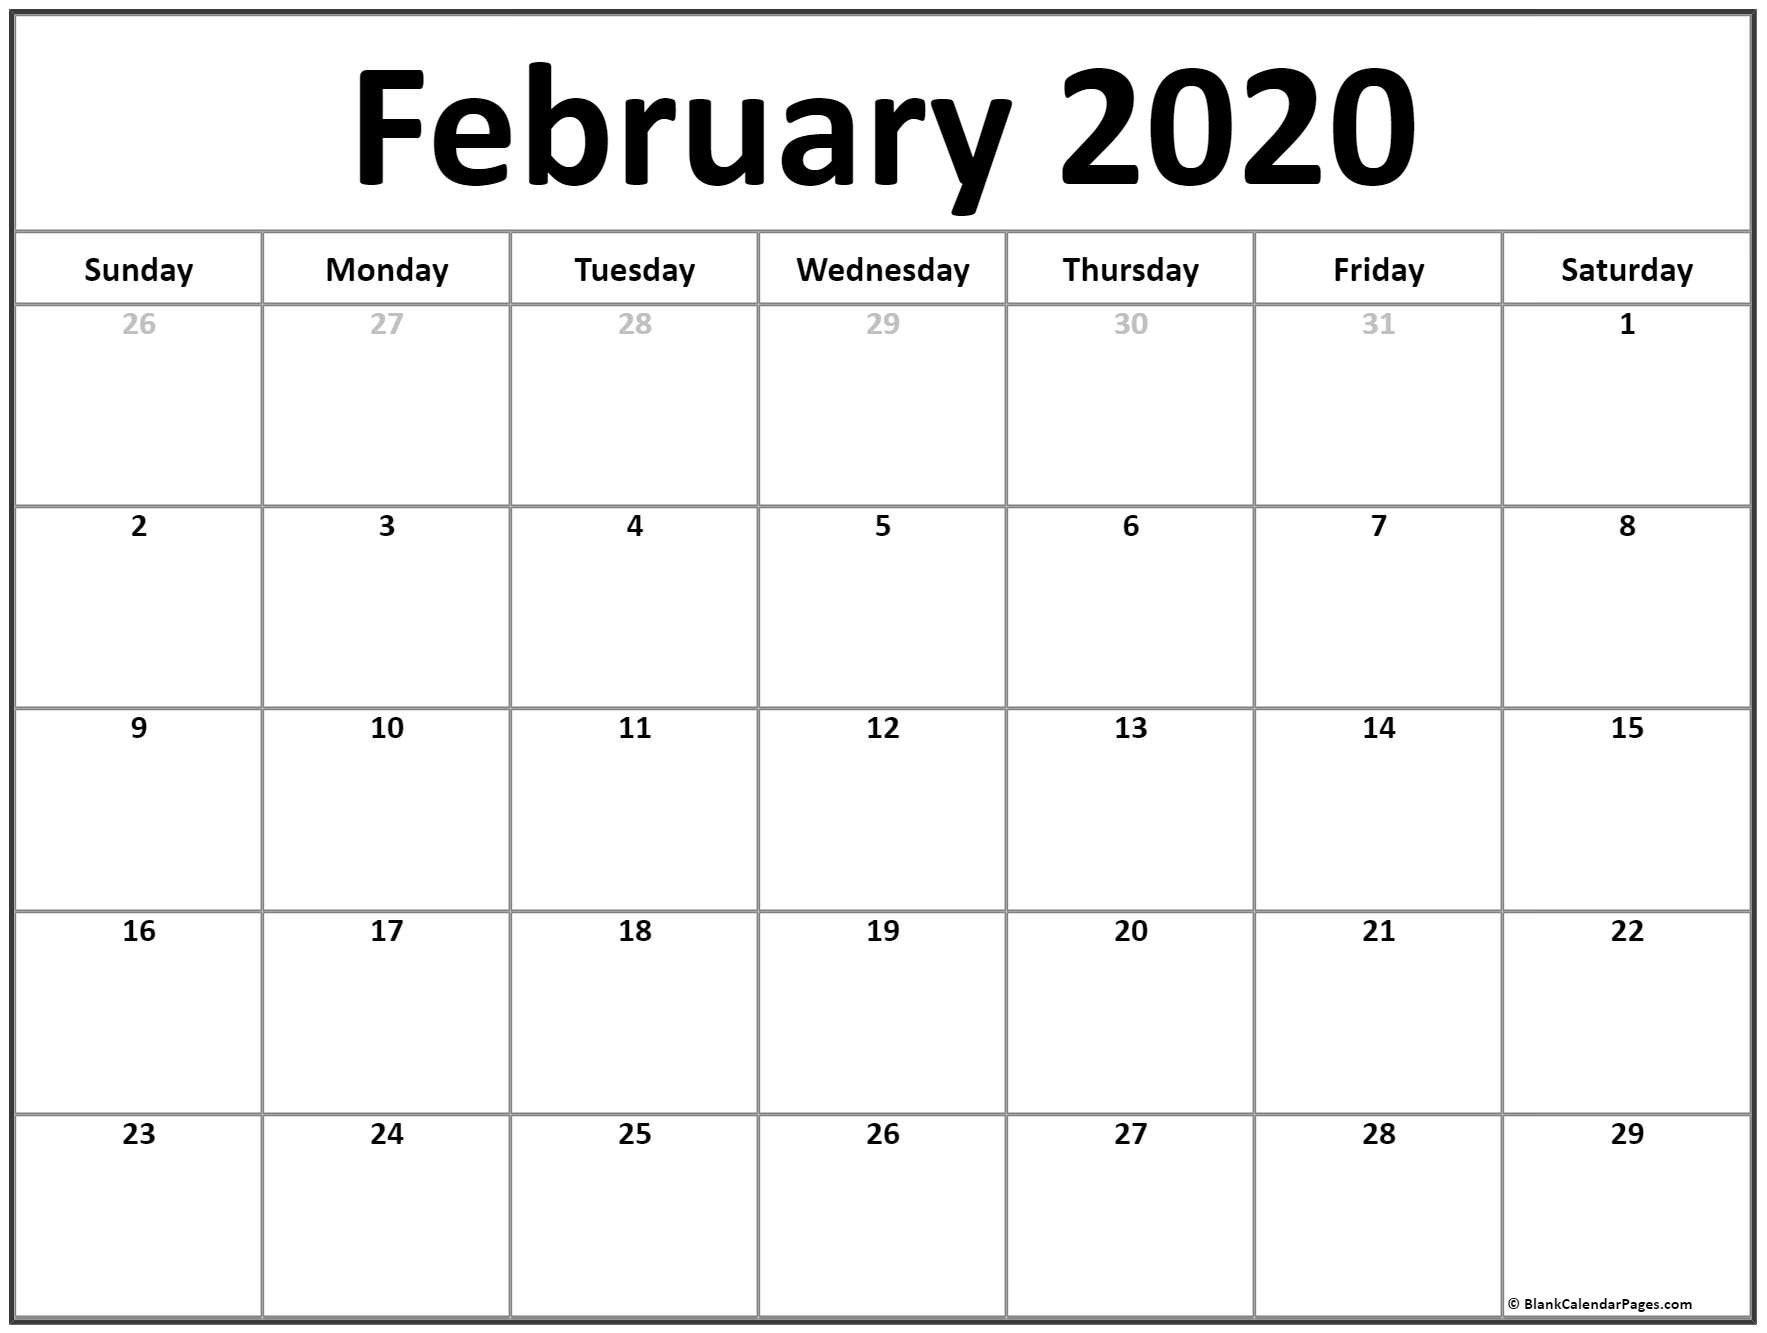 February 2020 Printable Calendar Free In 2020 (With Images